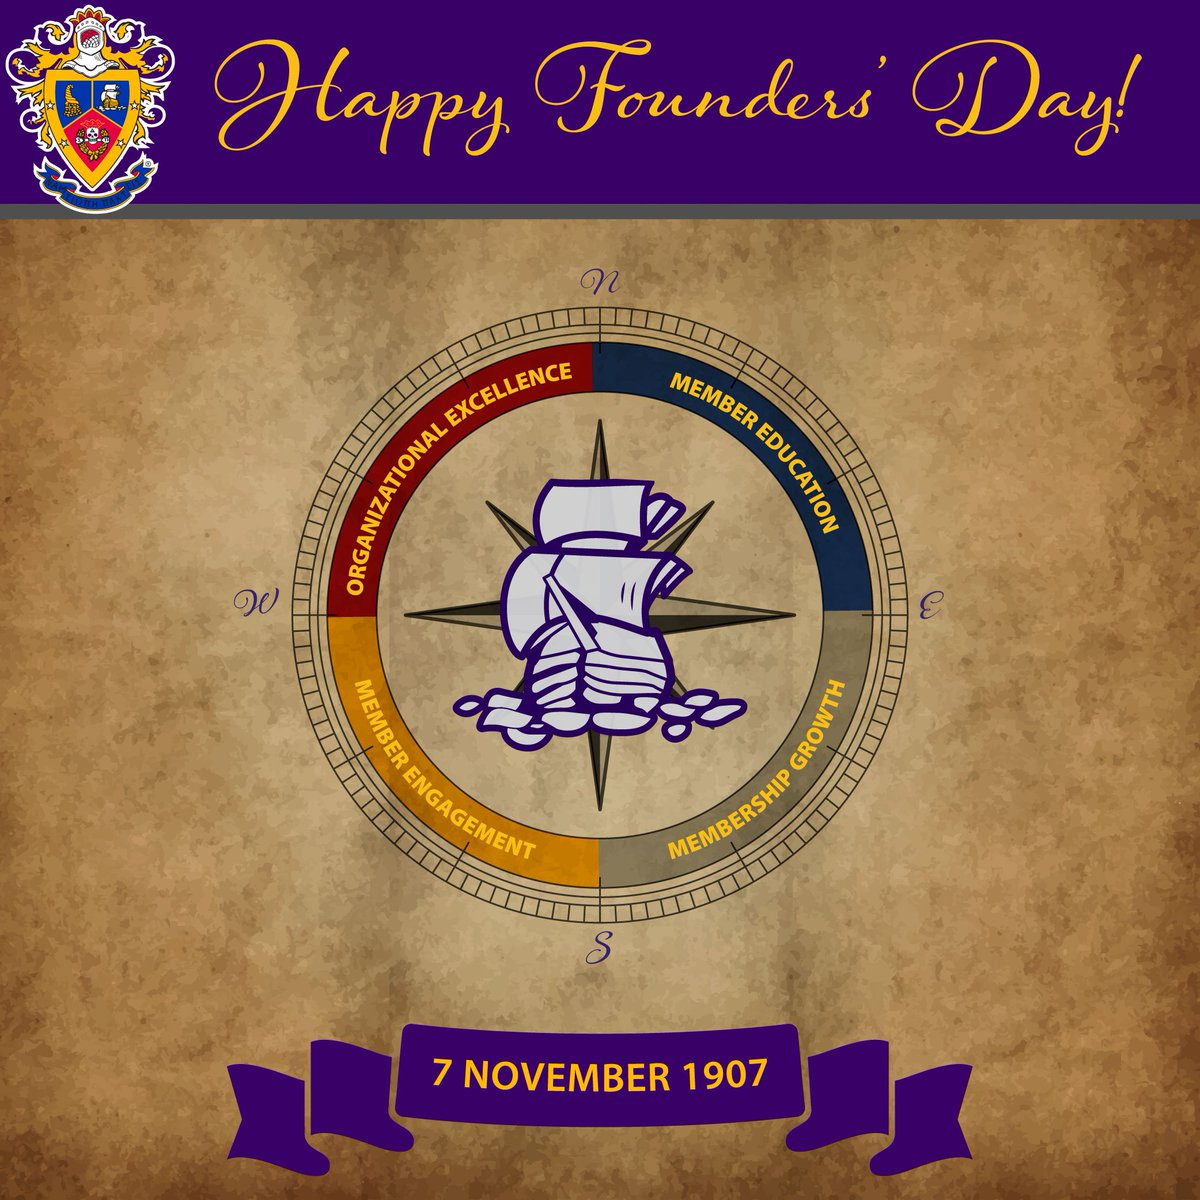 Happy #DSPFoundersDay! Let's make our Founders' proud by moving forward and furthering a #DSPHigherStandard. https://t.co/CEHmNYagzI